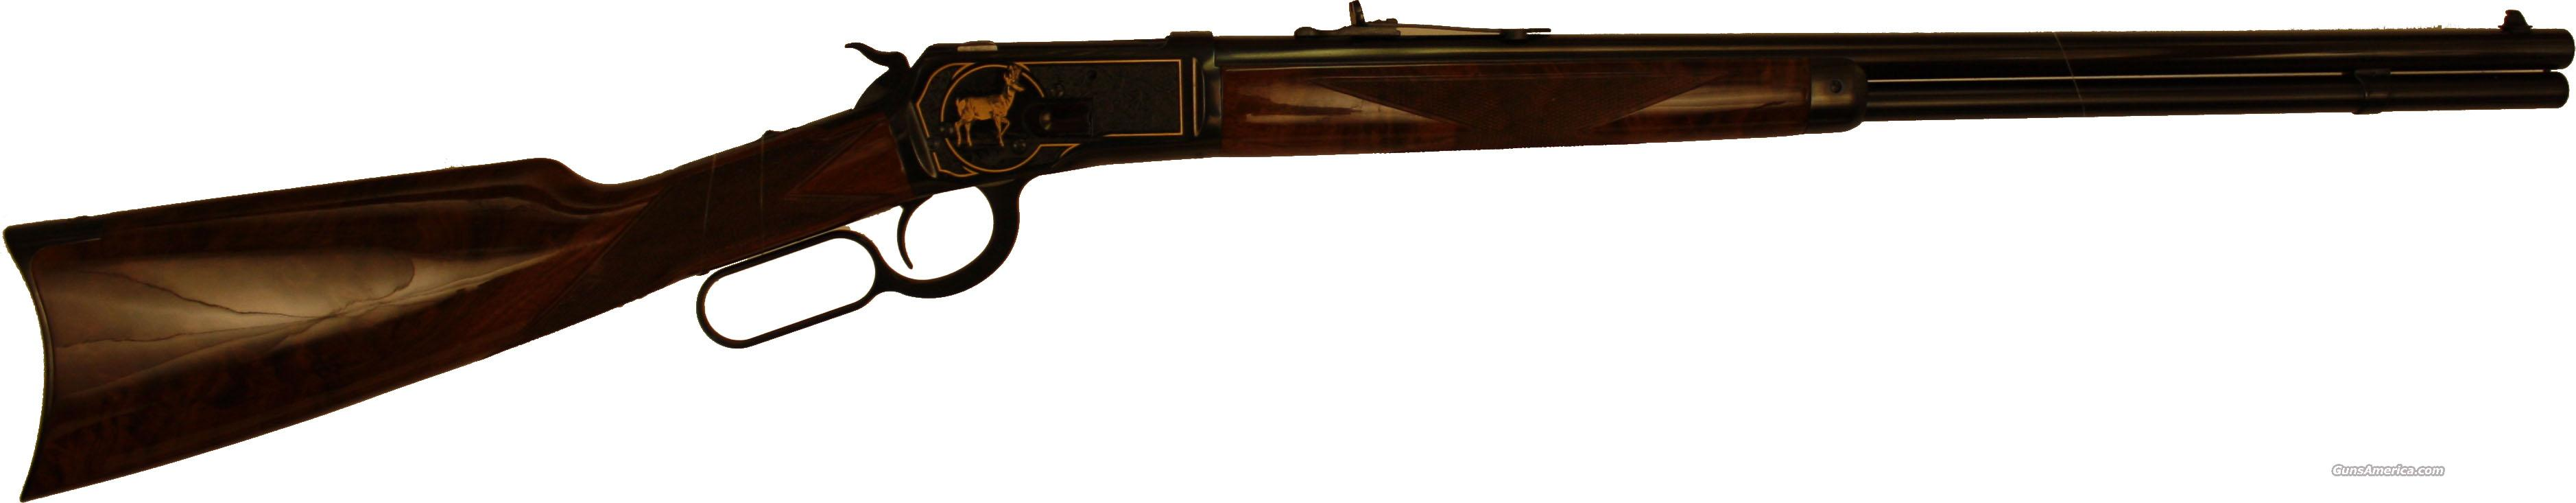 WINCHESTER 1892 45 COLT HIGH GRADE FREE SHIPPING AND INSURANCE  Guns > Rifles > Winchester Rifles - Modern Lever > Other Lever > Post-64